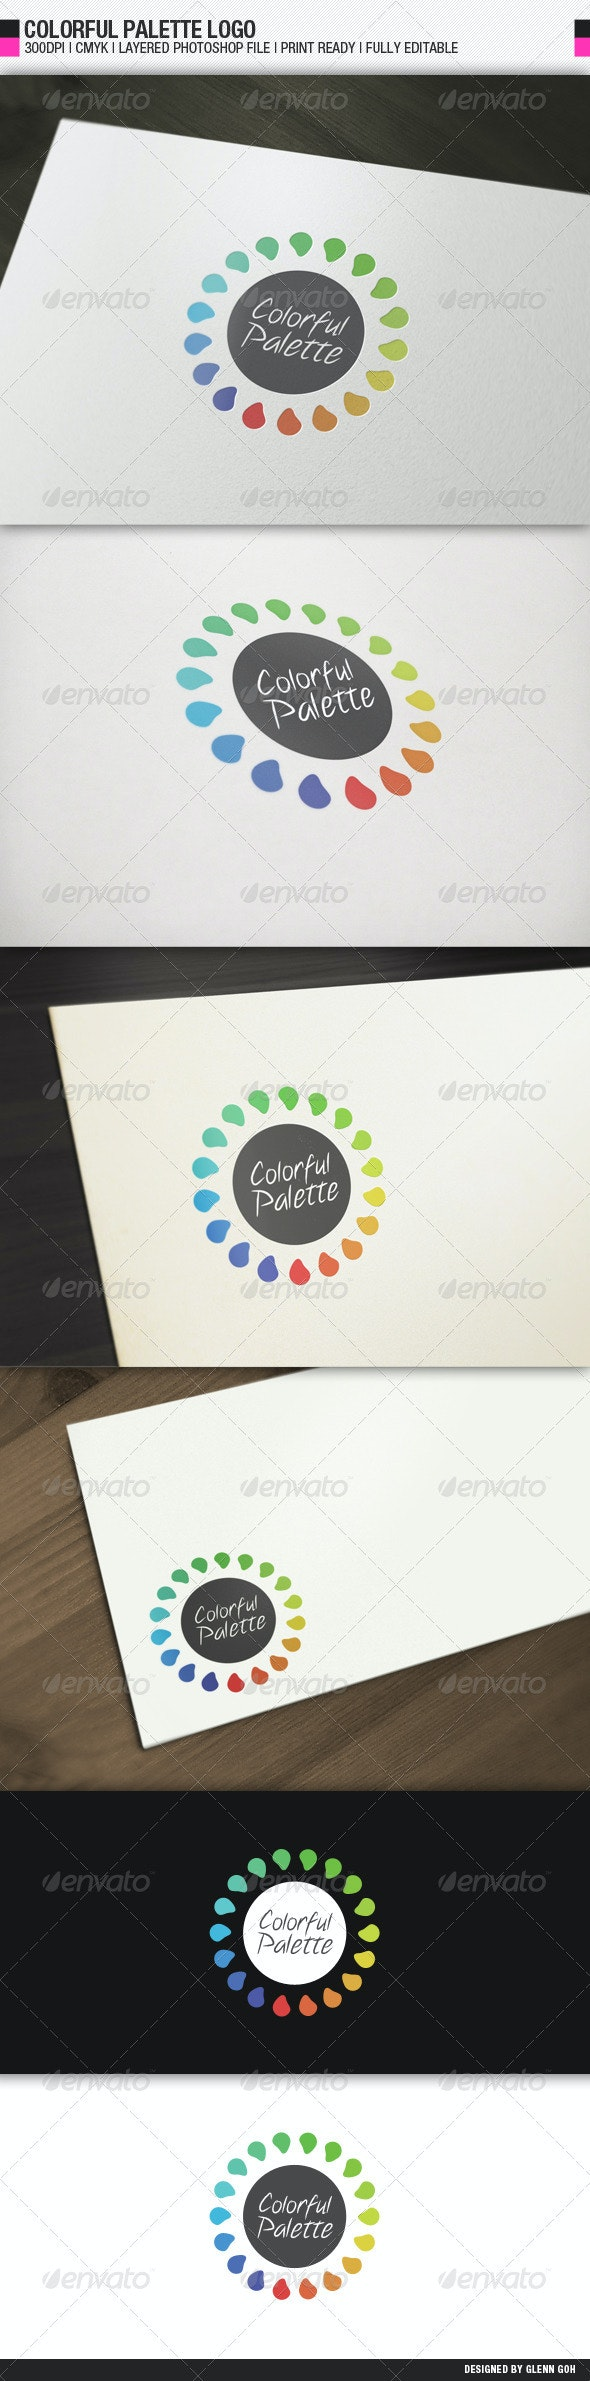 Colorful Palette Logo - Objects Logo Templates